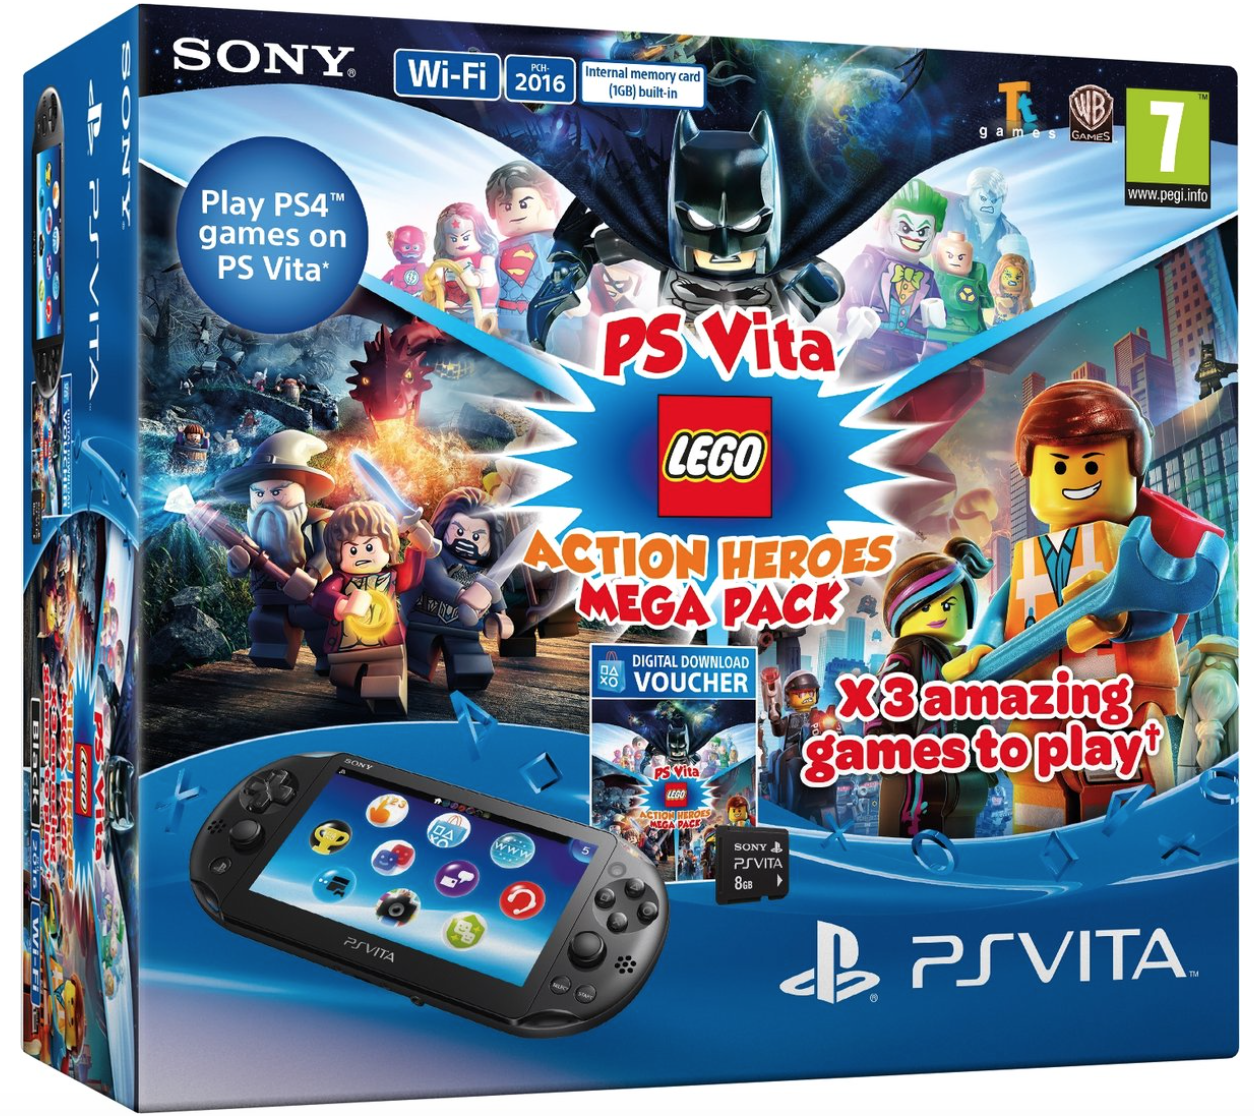 Boxart van PlayStation Vita Slim Console WiFi + 8GB Memory Card + LEGO Action Heroes Mega Pack Voucher (PSVita), Sony Entertainment